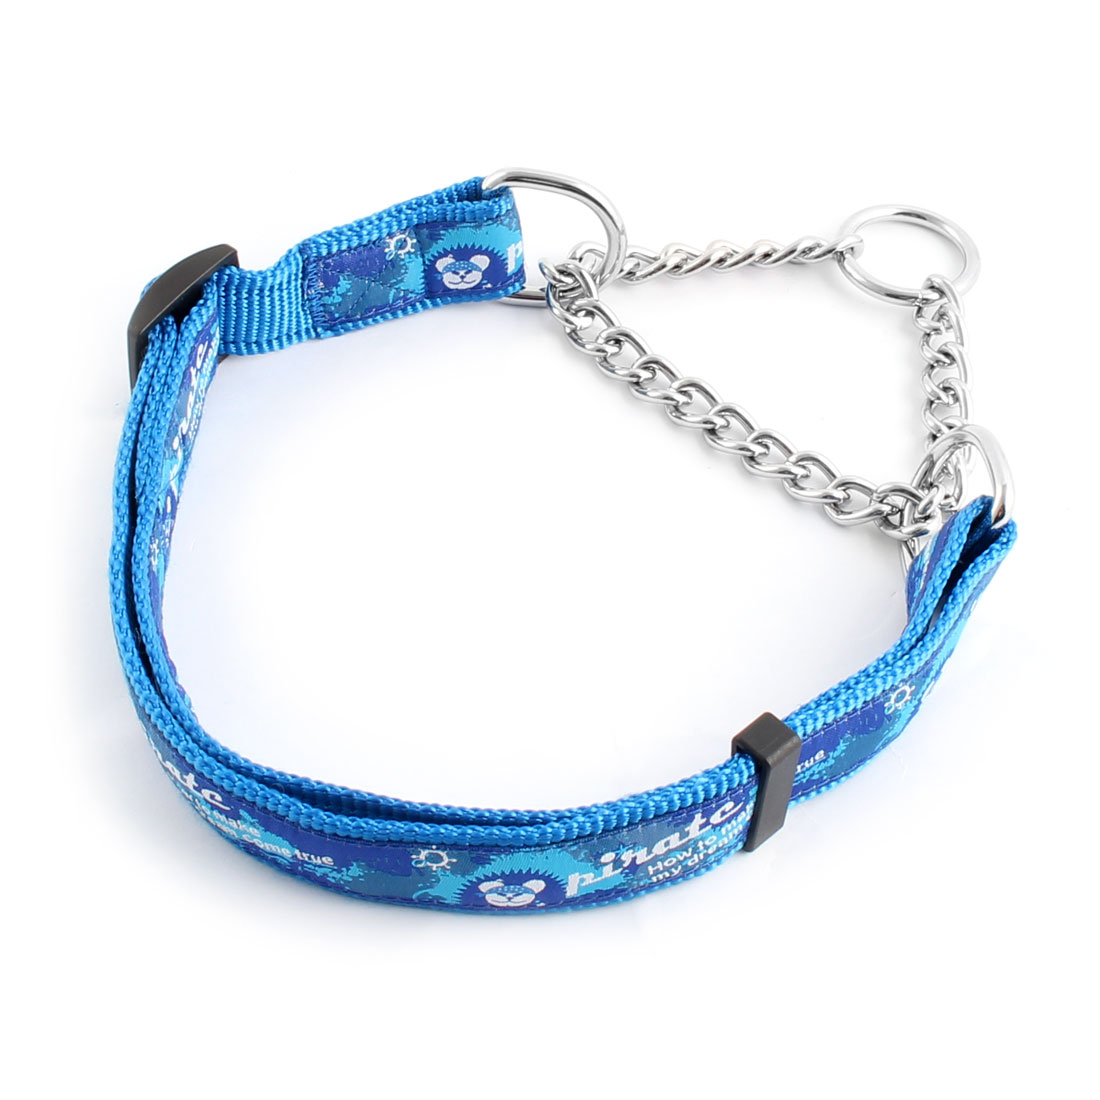 Dog Outdoor Nylon Rope Pirate Pattern Adjustable Neck Chain Decor Leash Blue